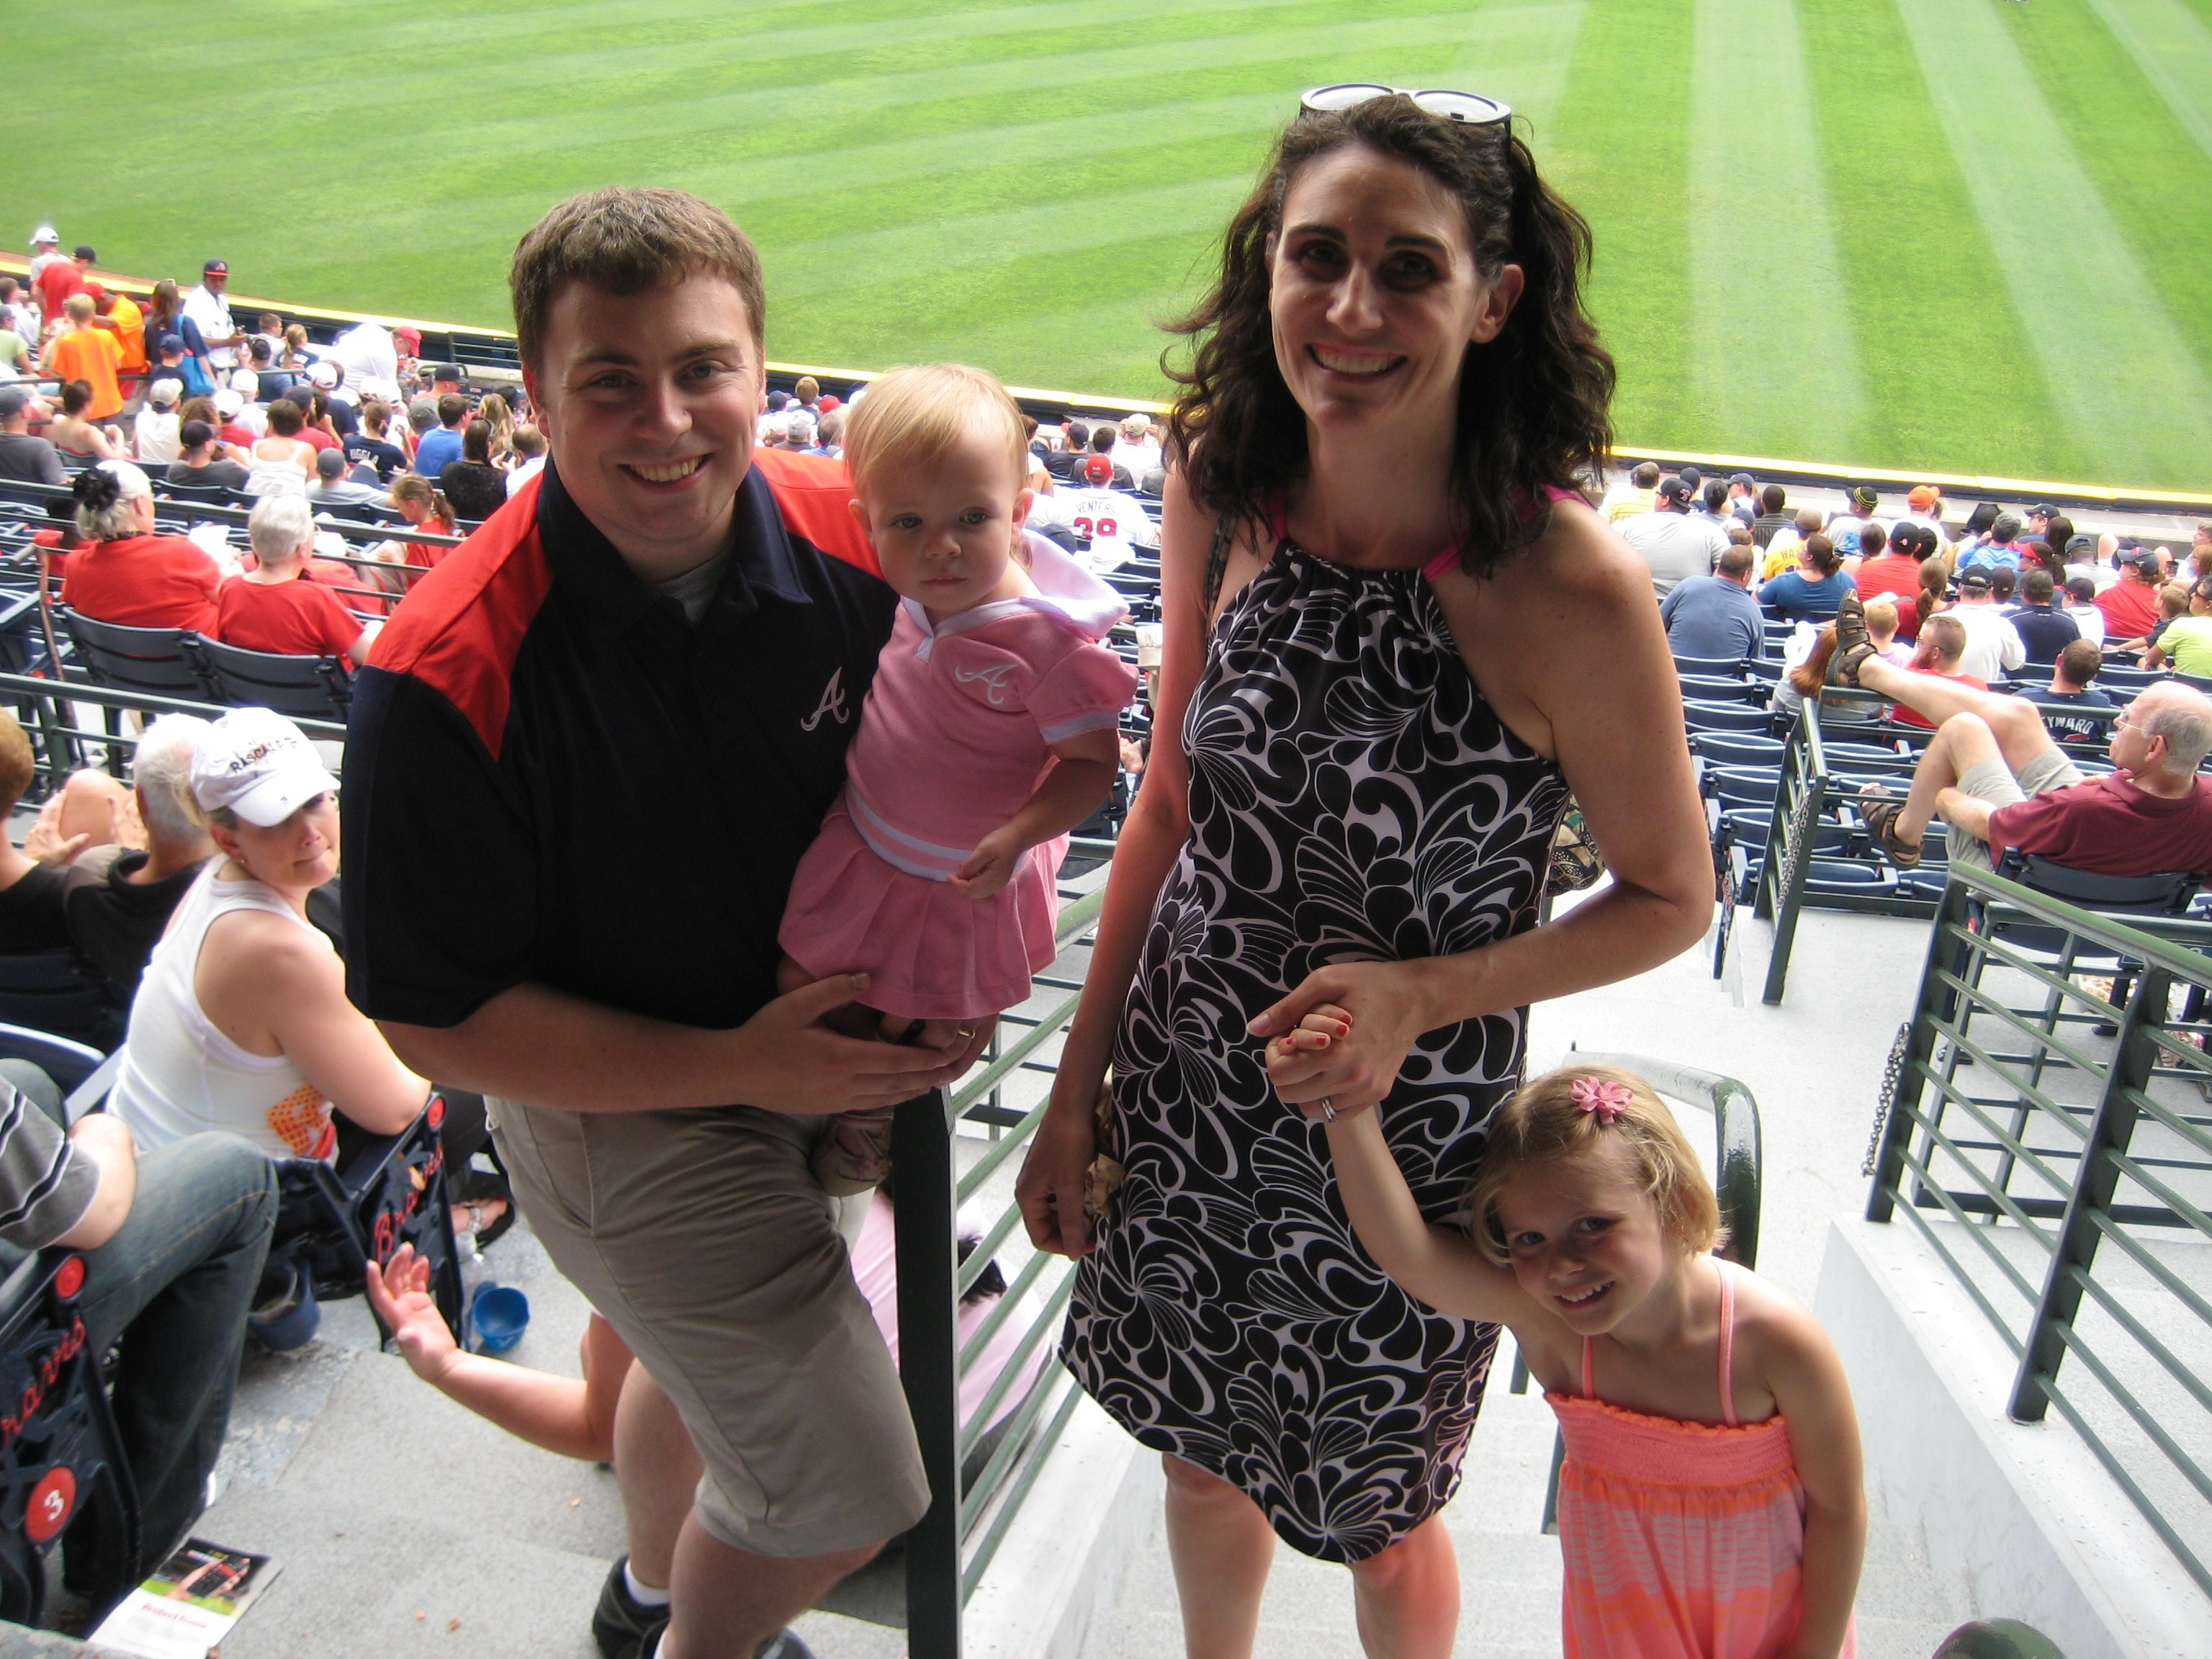 David N. and Elizabeth H. enjoy the 7th inning stretch with their girls during the 2013 Braves game.